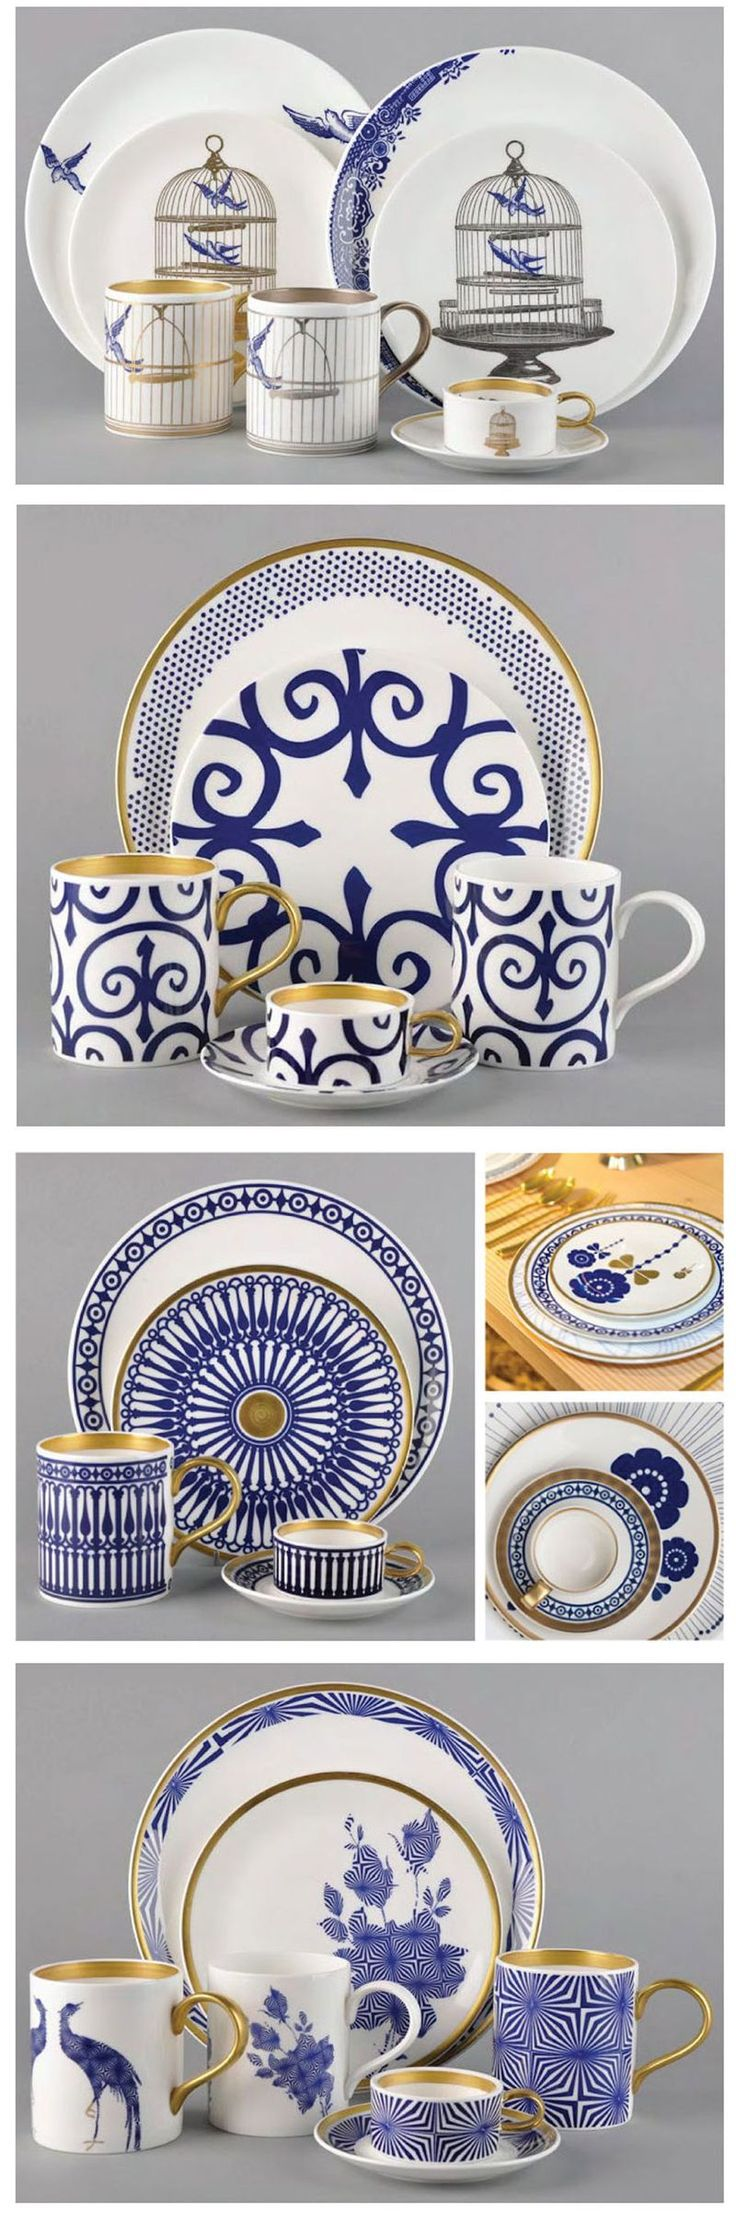 Flux Stoke-on-Trent: Blue and White china, a classic tradition, done in a modern way.